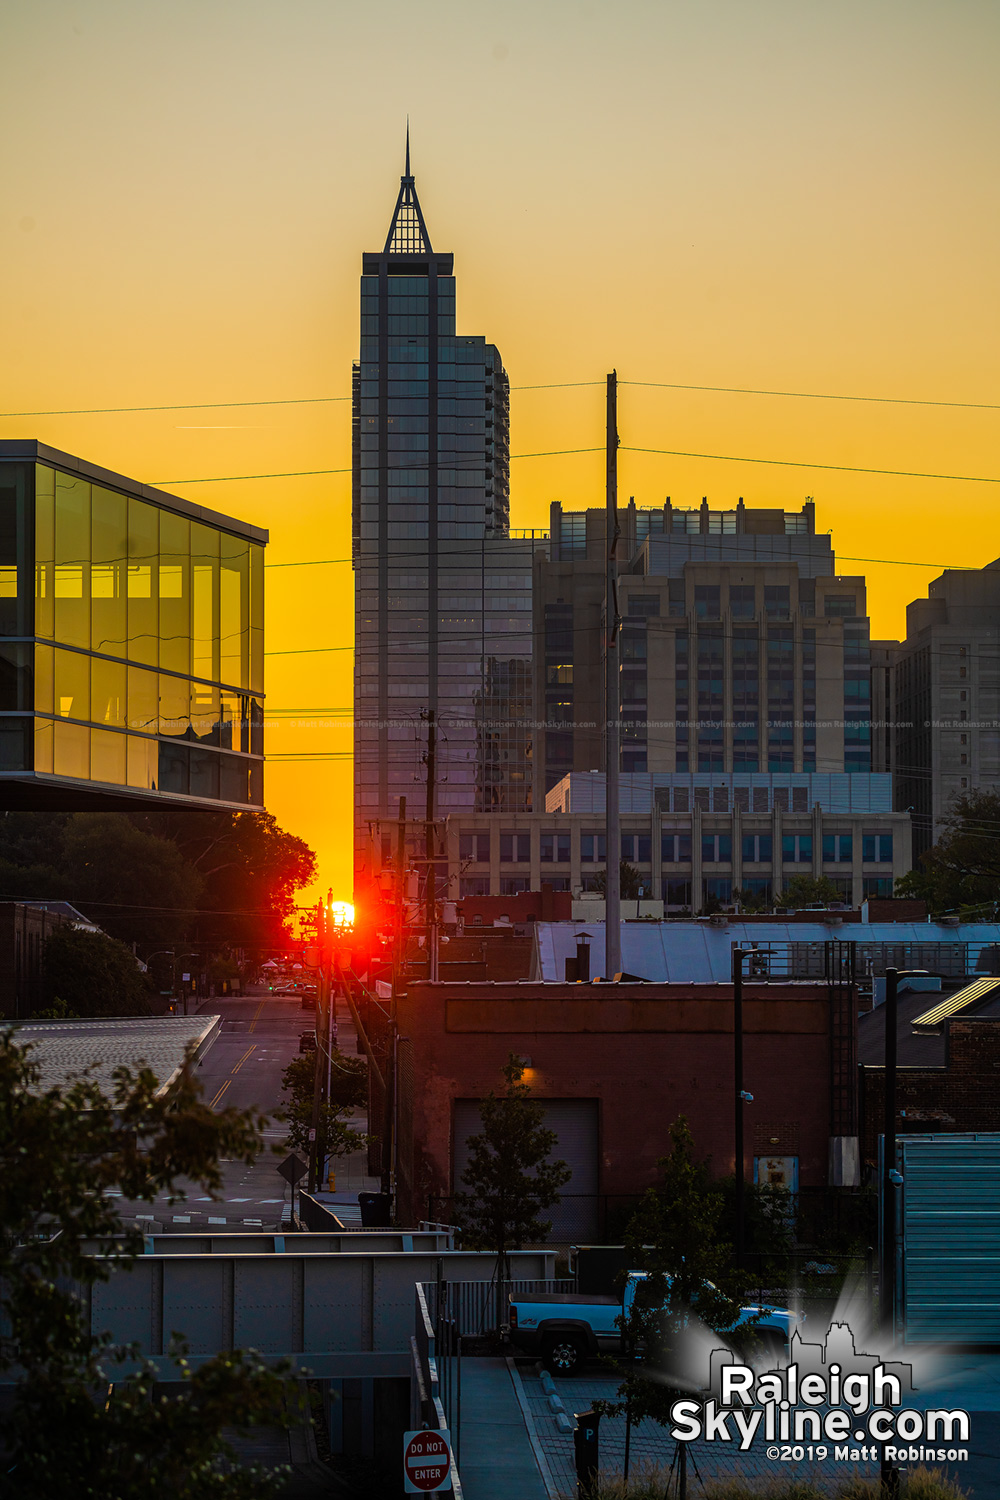 Raleigh-henge sunrise from Union Station